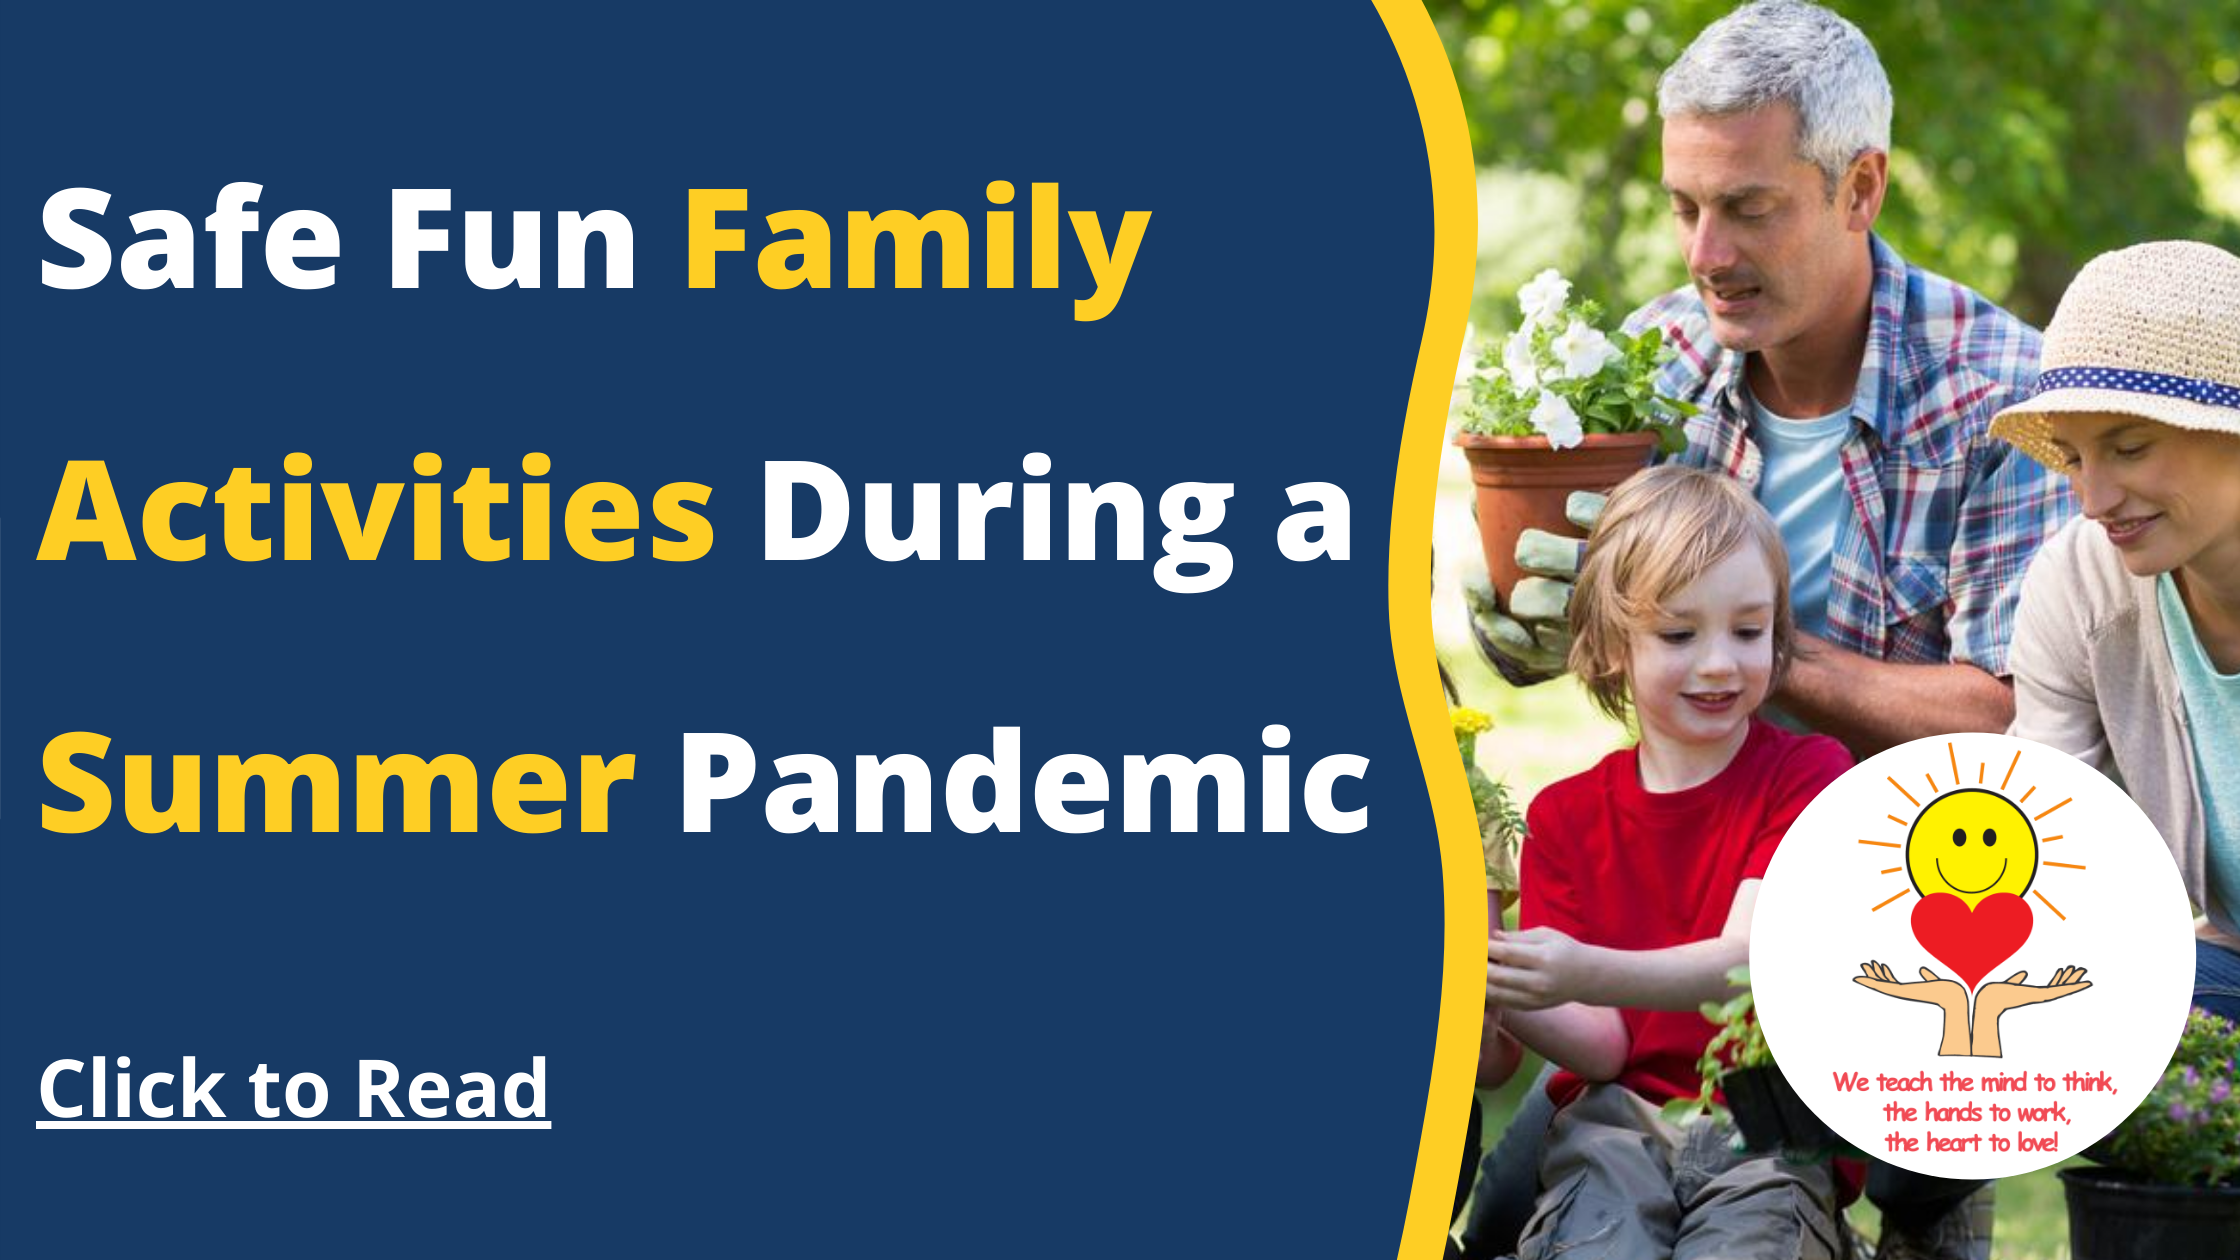 Safe Fun Family Activities During a Summer Pandemic